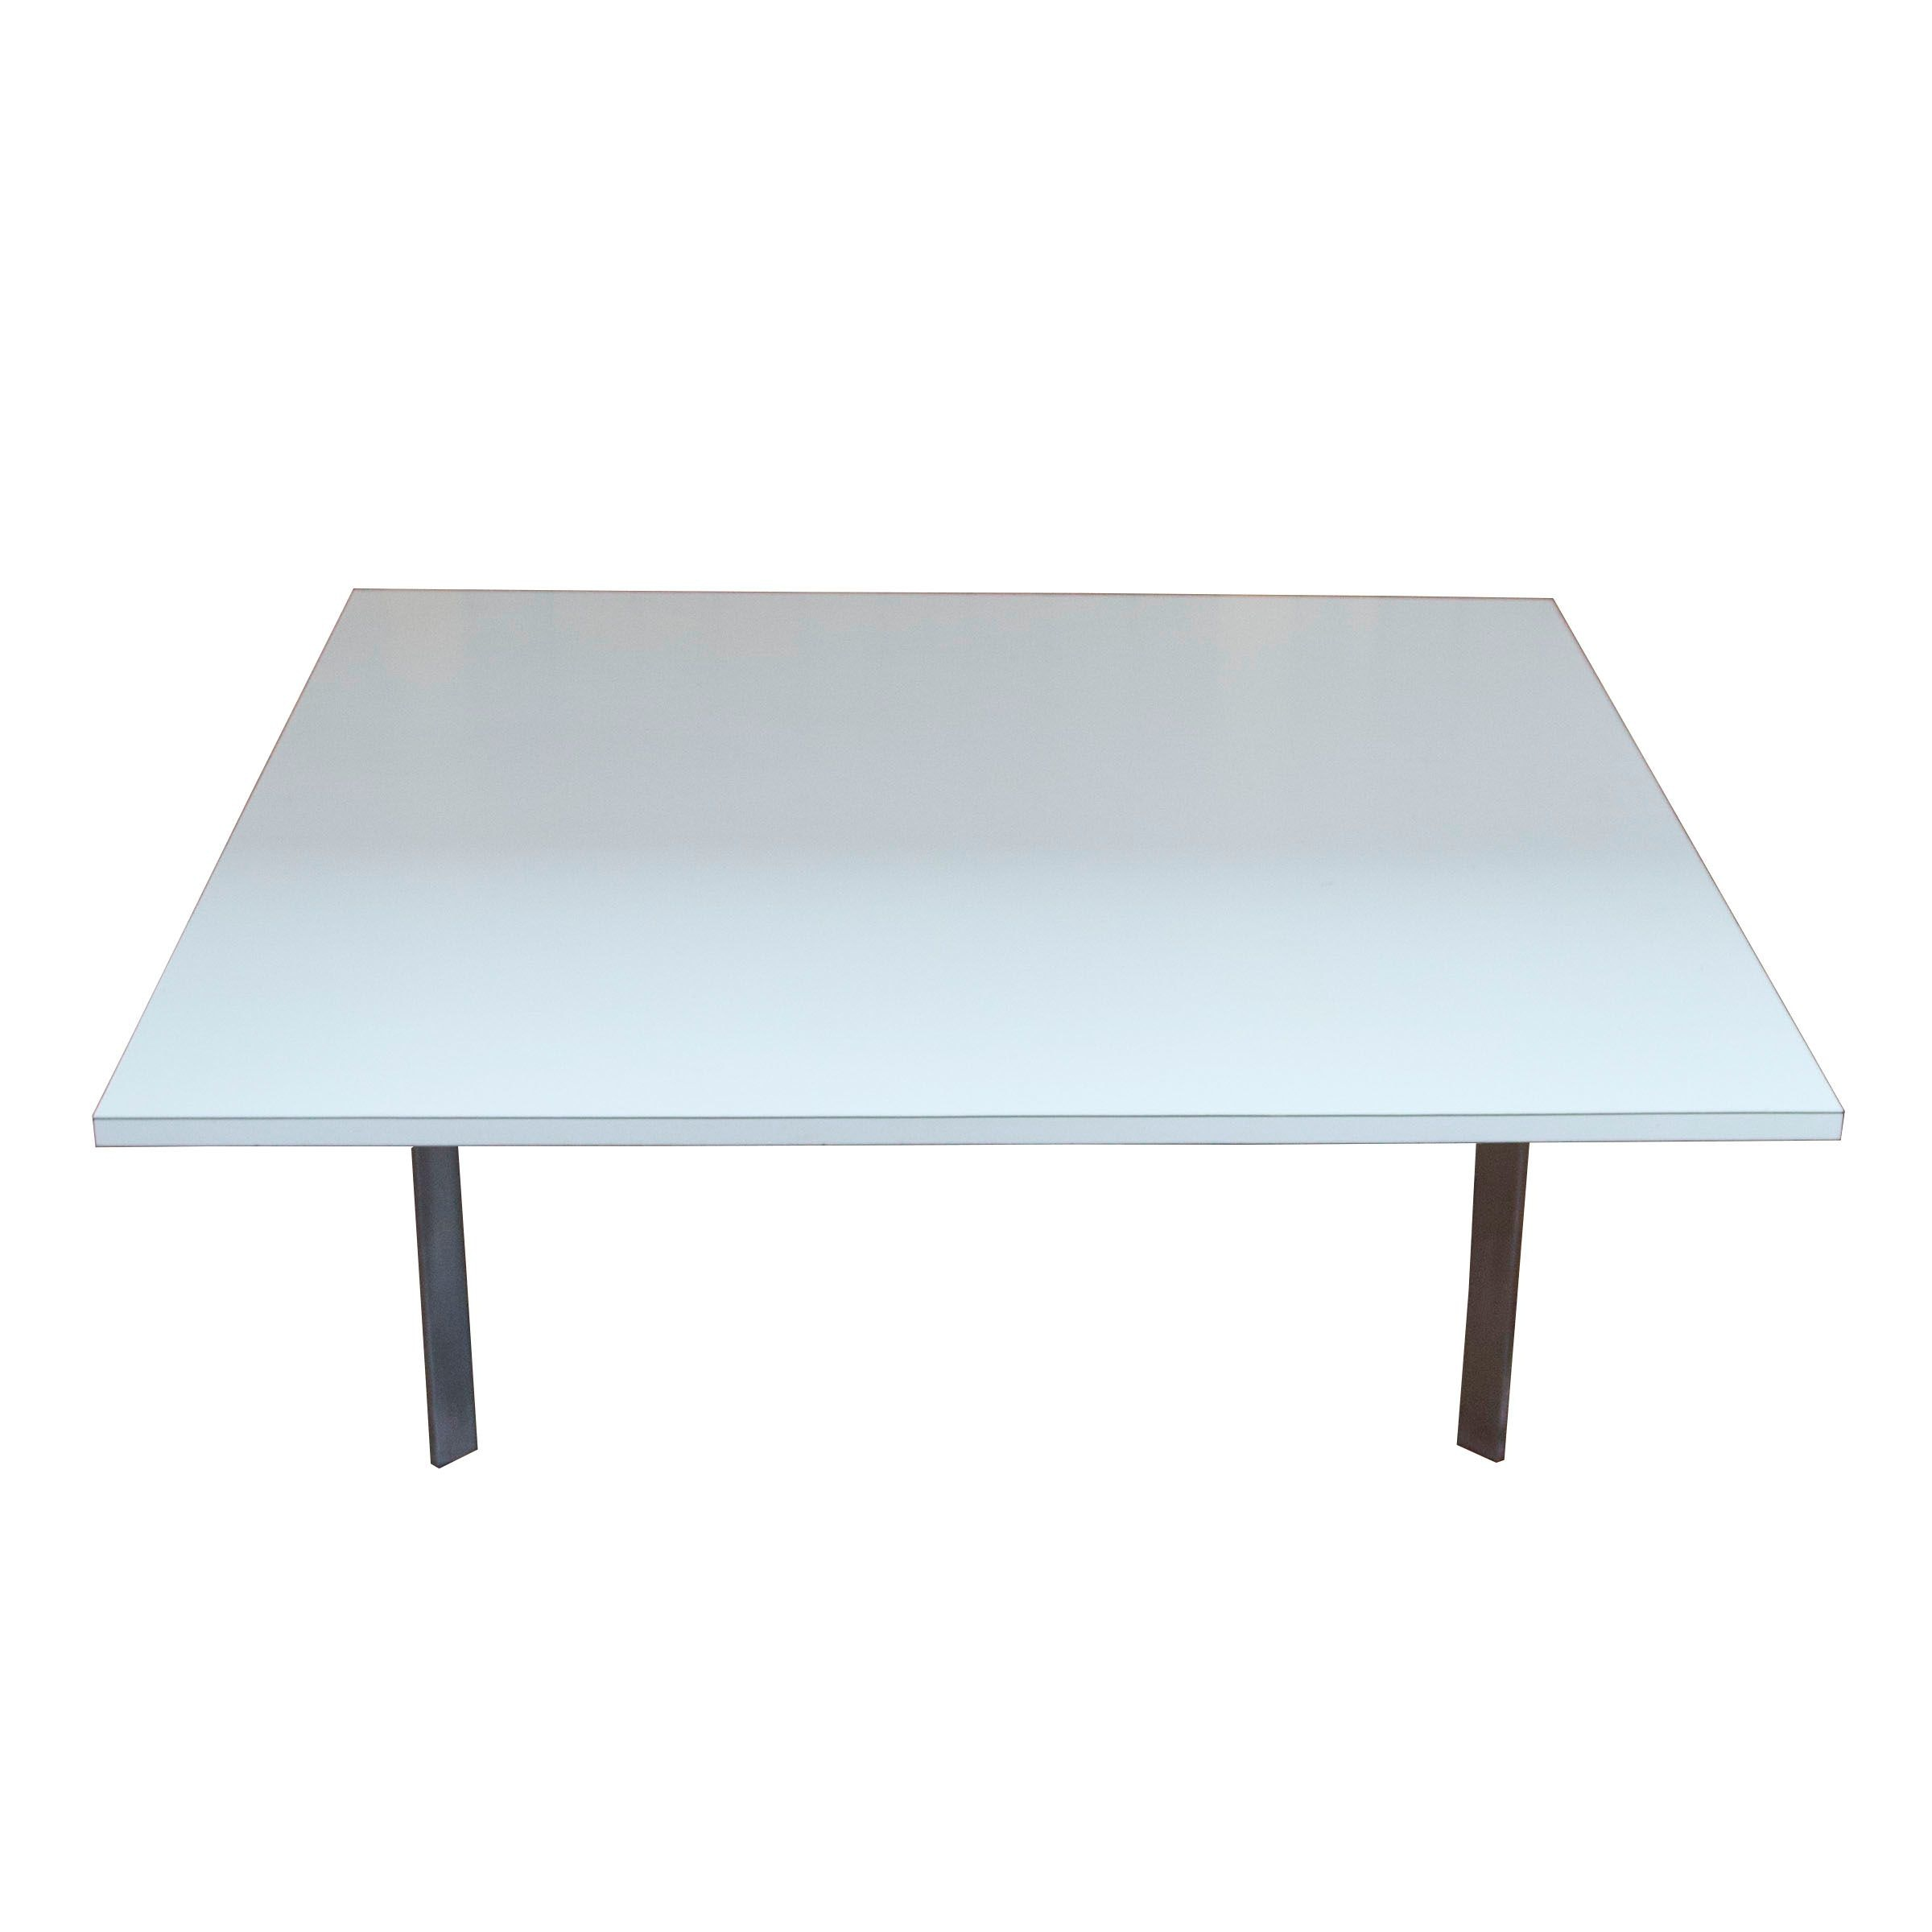 Vintage Robert Metcalf Designed Modernist Coffee Table